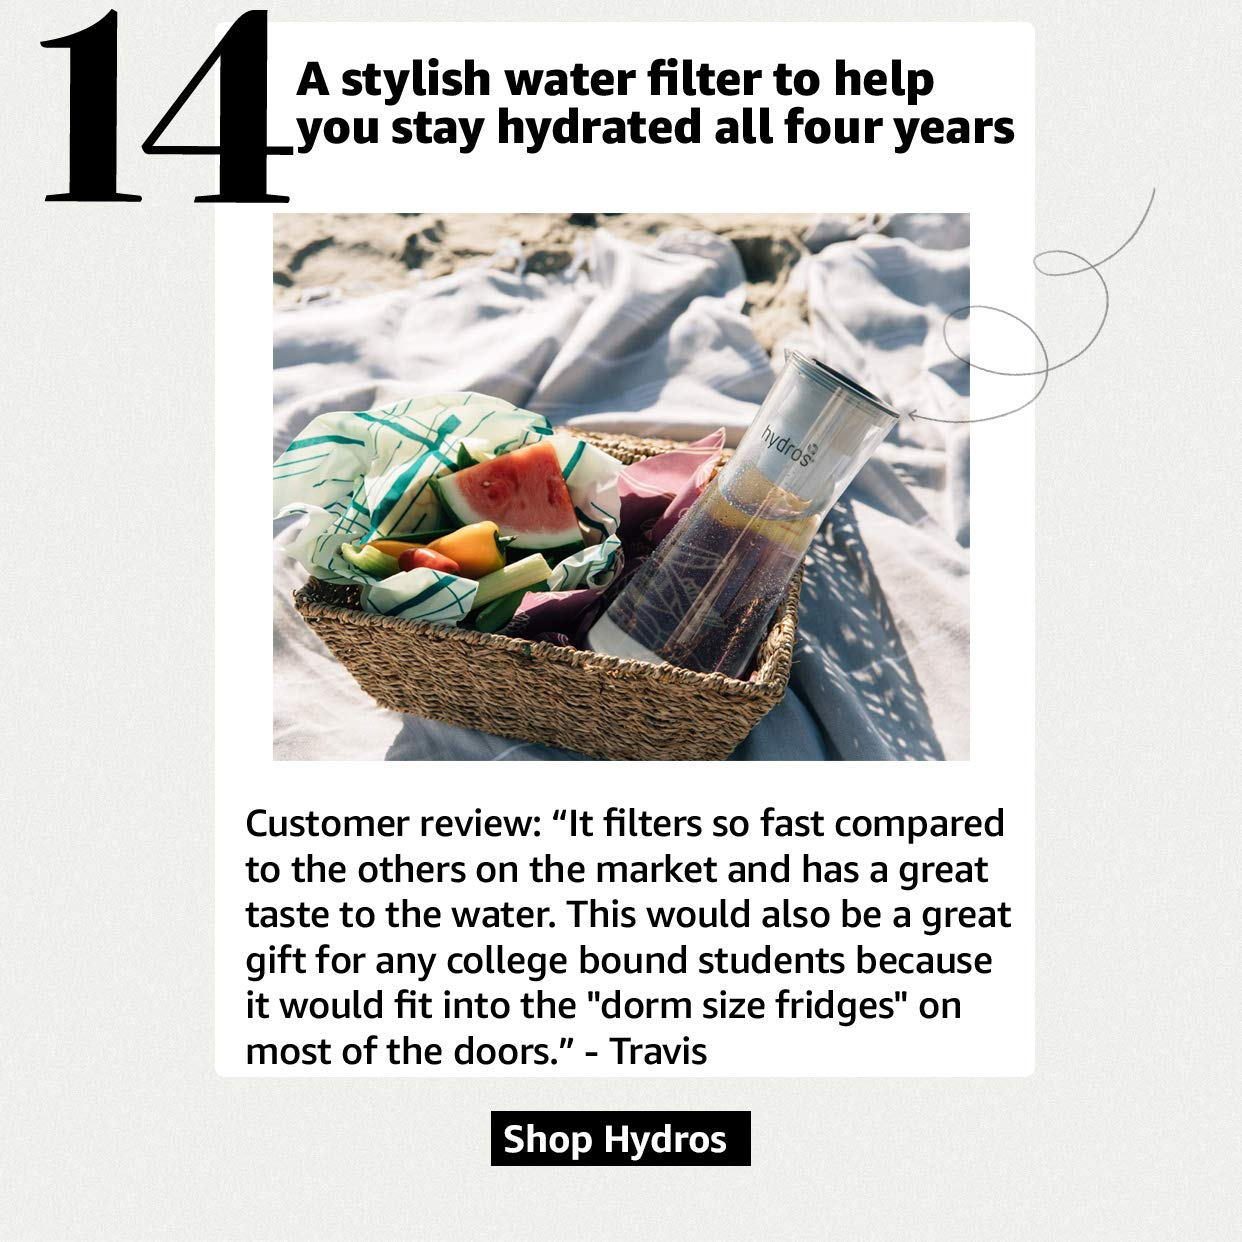 A stylish water filter to help you stay hydrated all four years